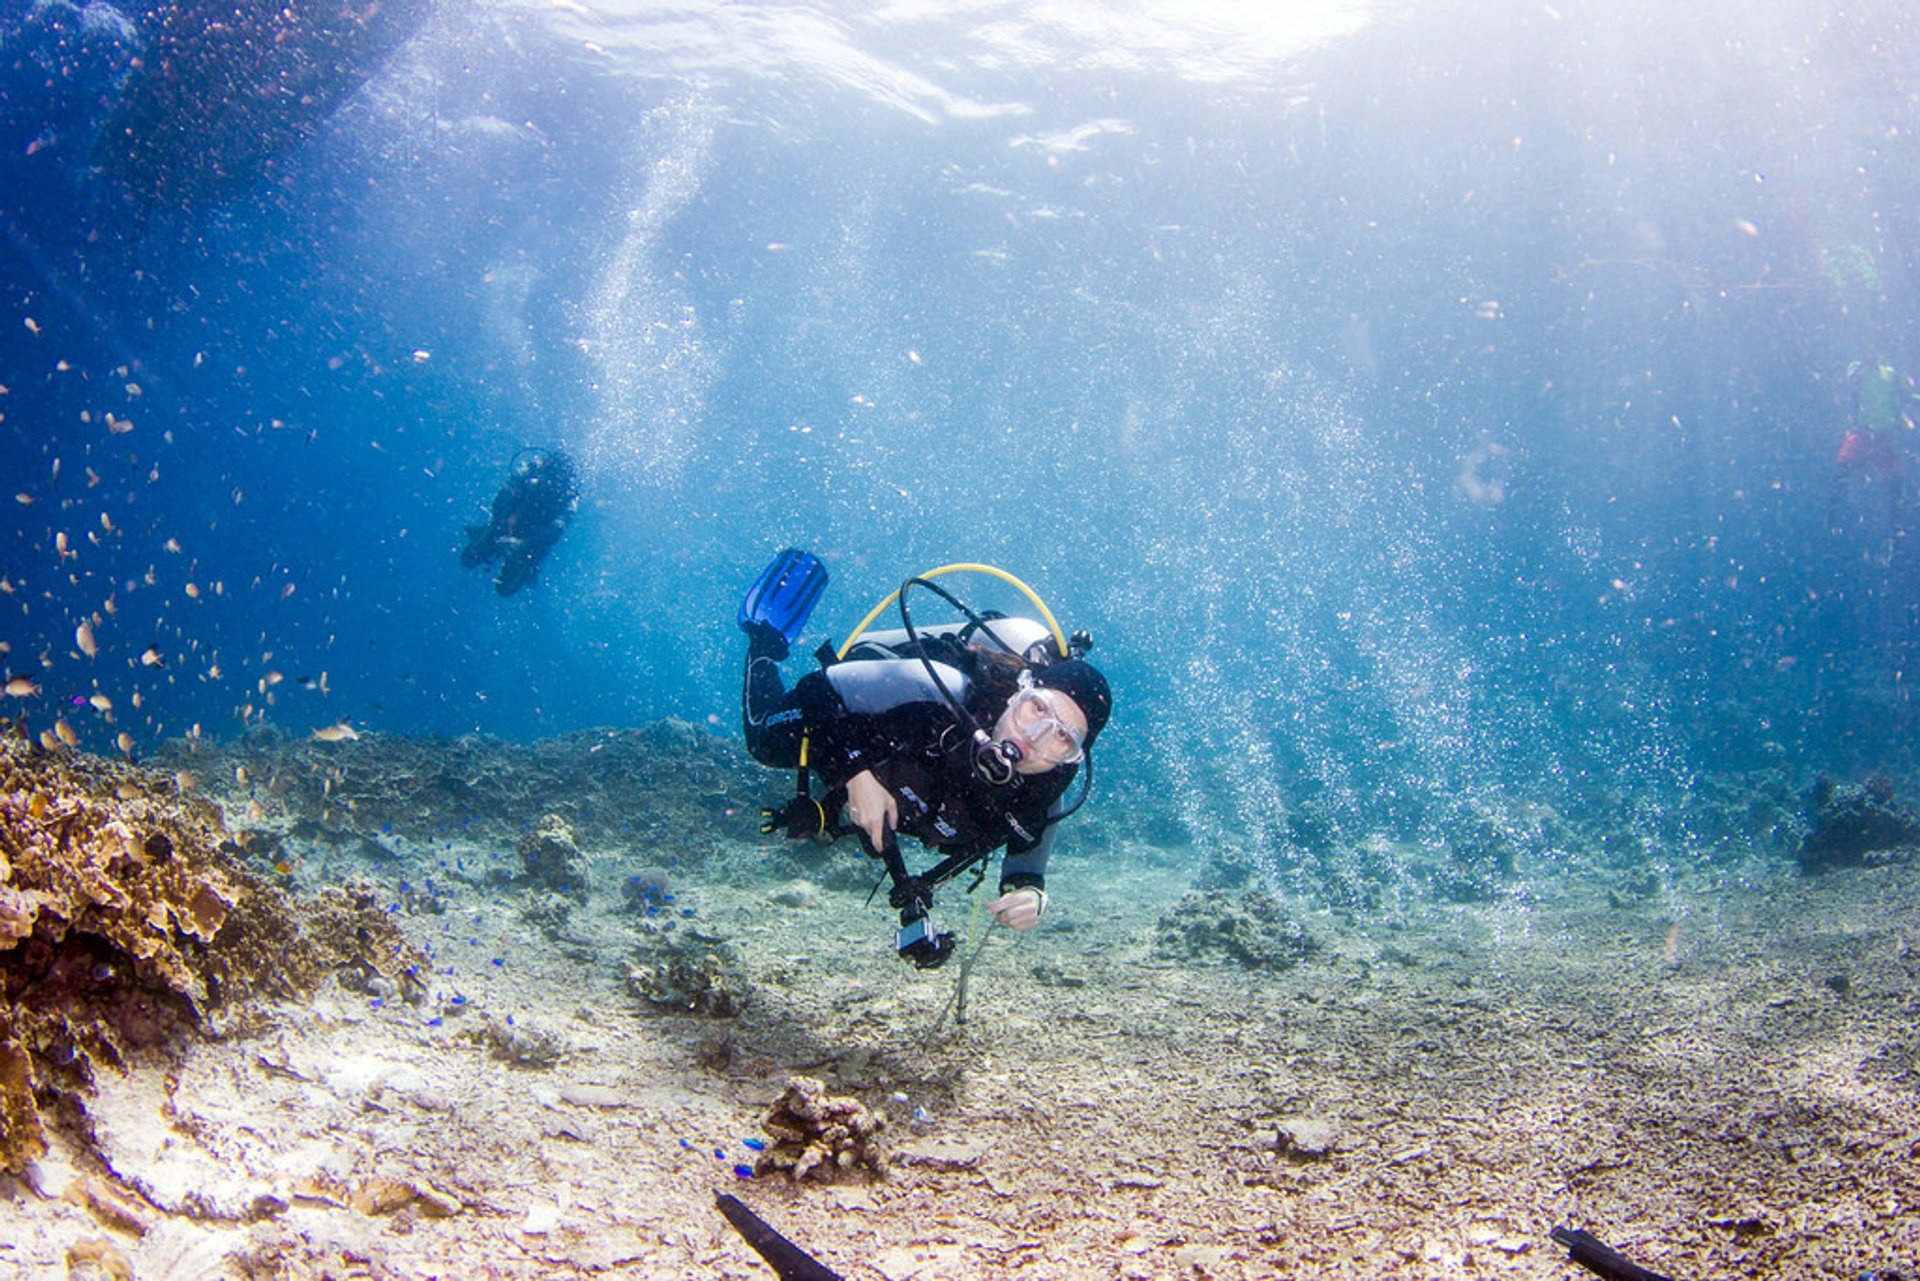 Snorkelling and Scuba Diving in Philippines 2020 - Best Time